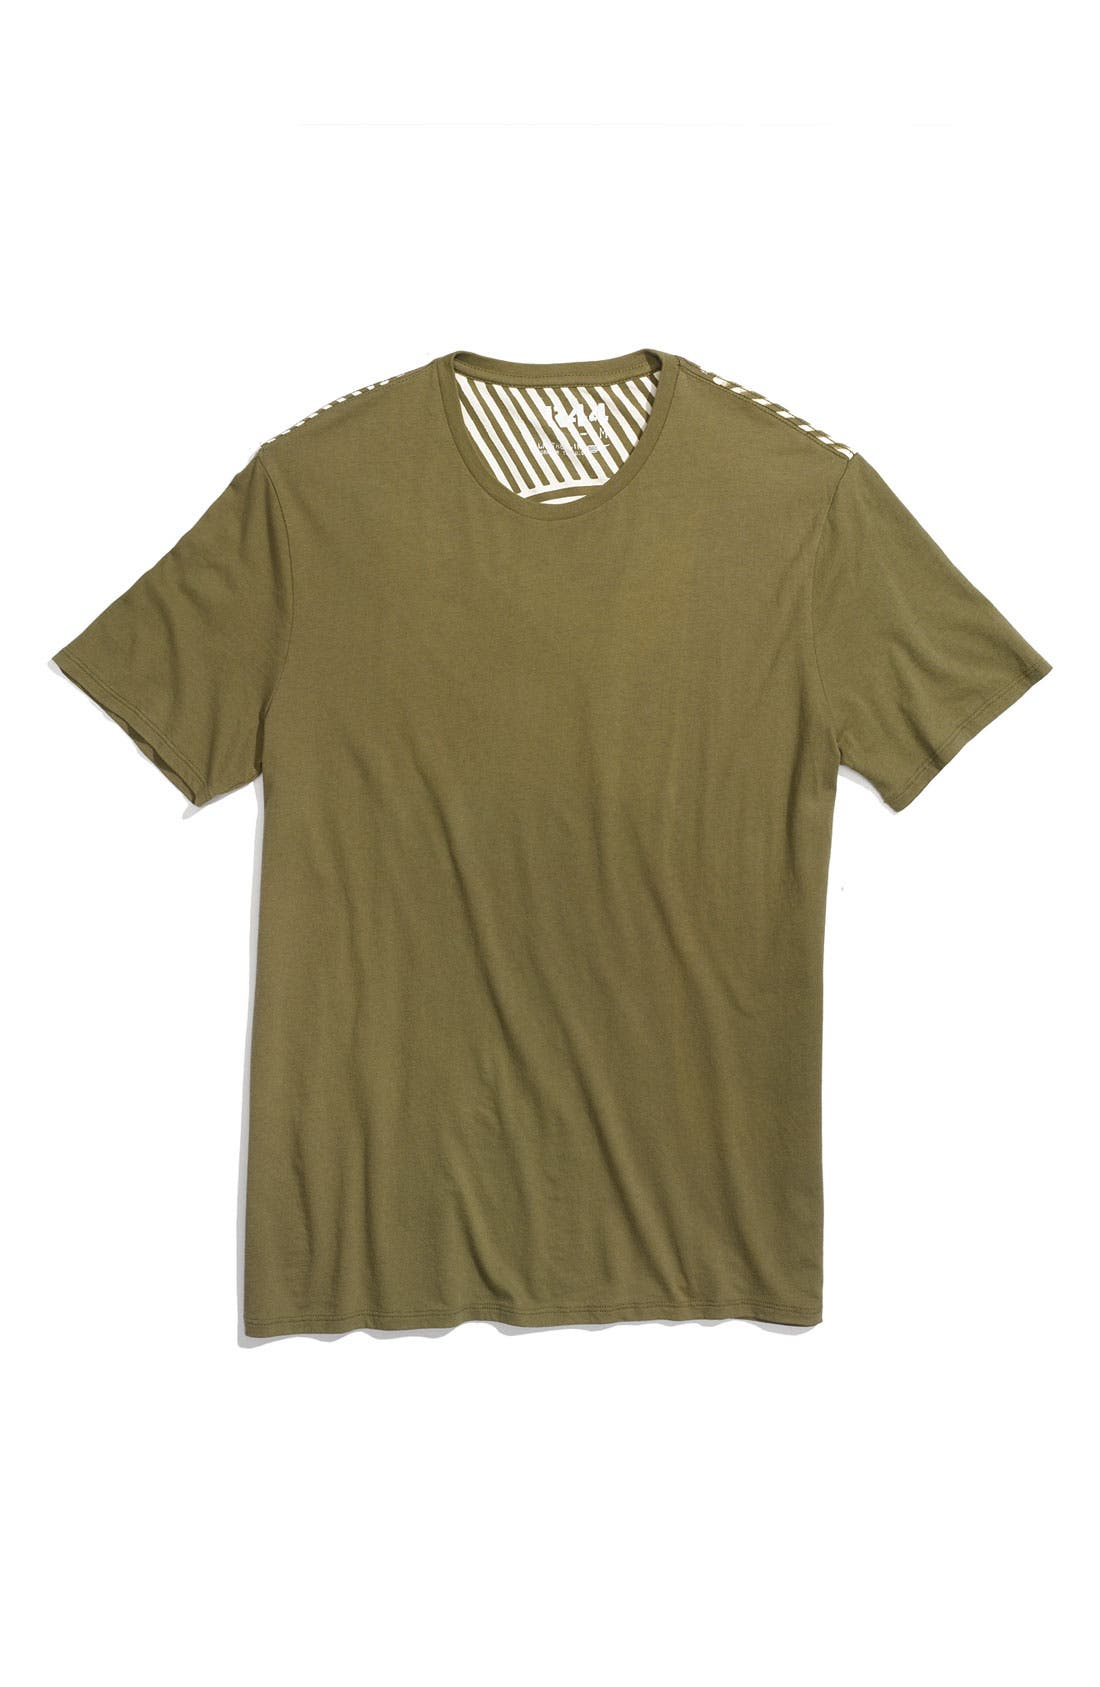 Alternate Image 2  - R44 'Dazzle' Trim Fit Organic Cotton T-Shirt (Men)